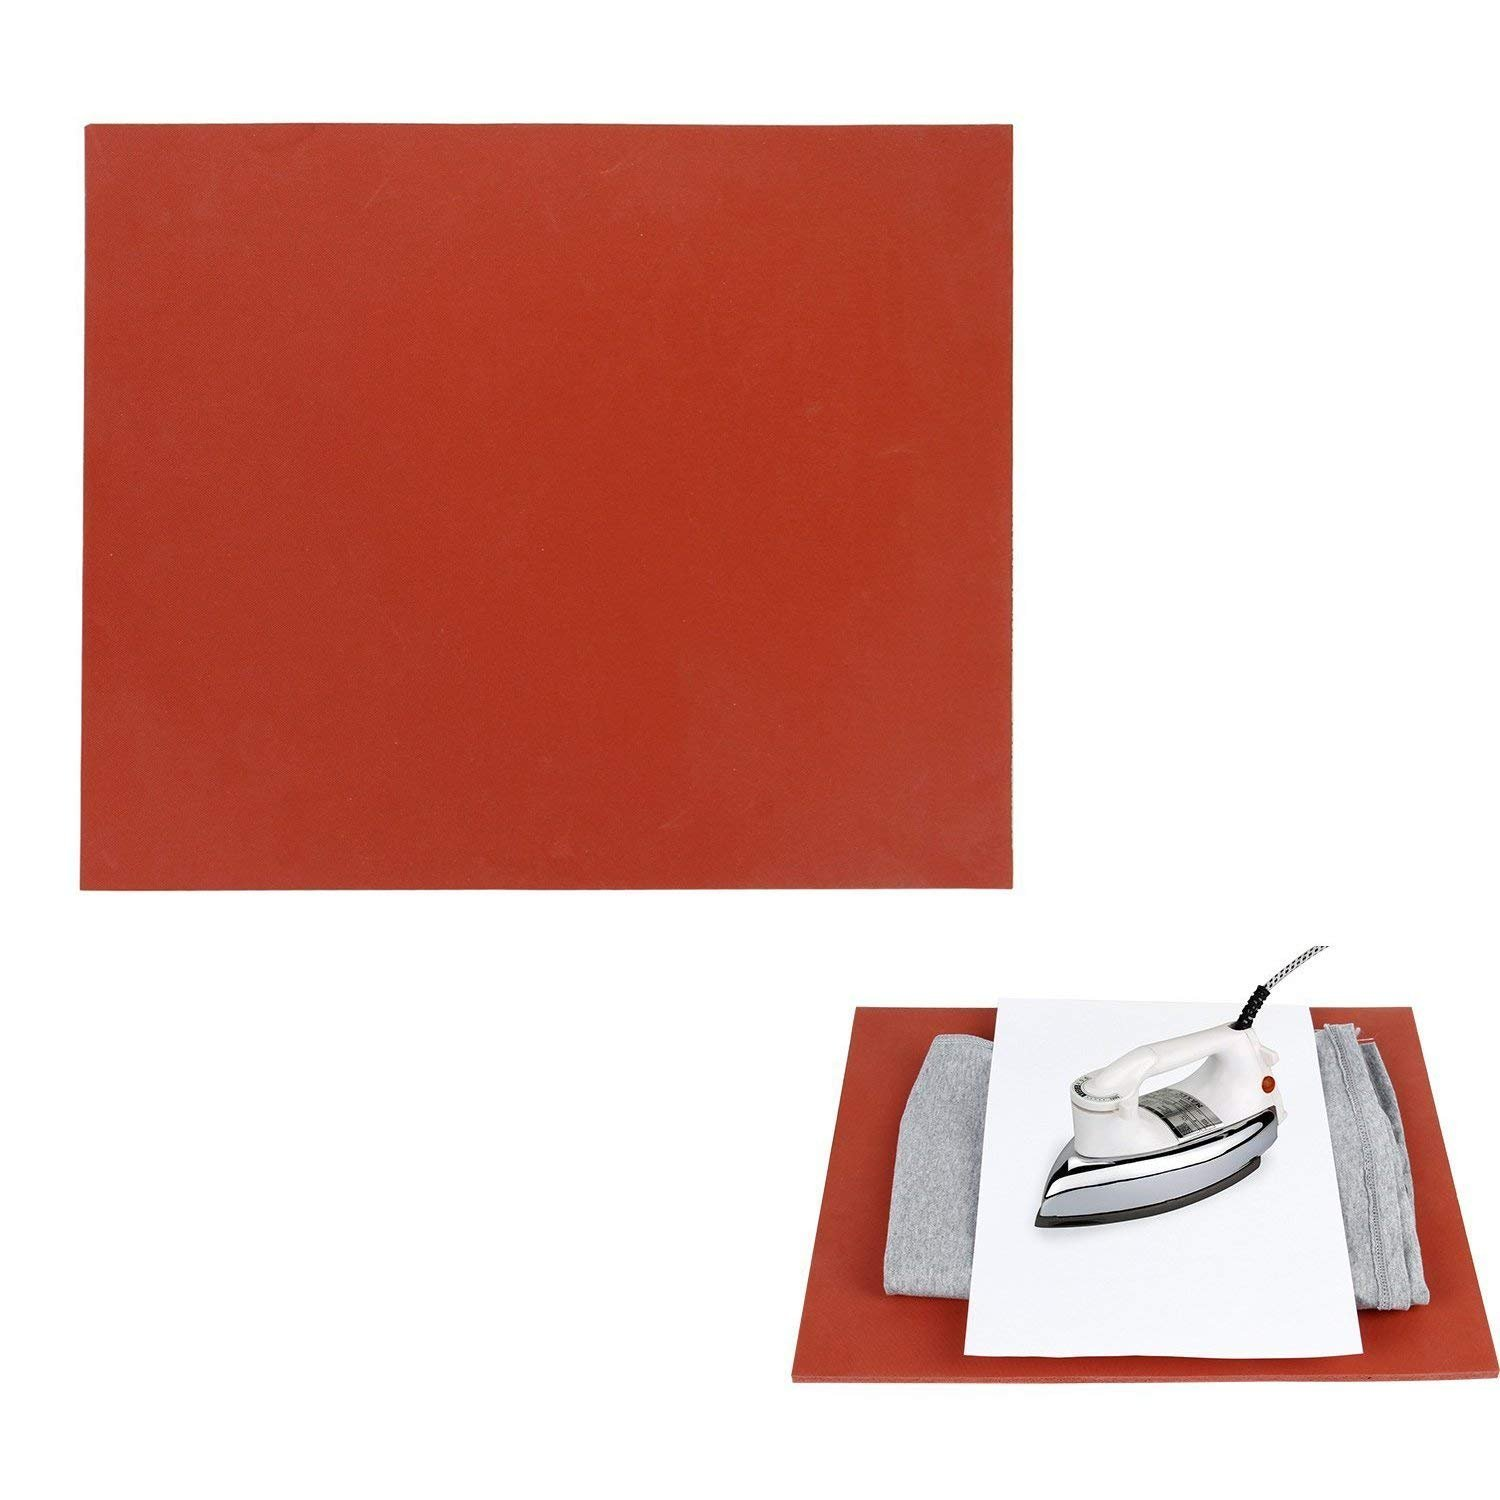 Poever 12×15 Silicone Pad Flat Heat Press Replacement Heat Resistant Silicone Mat Red 4336975479